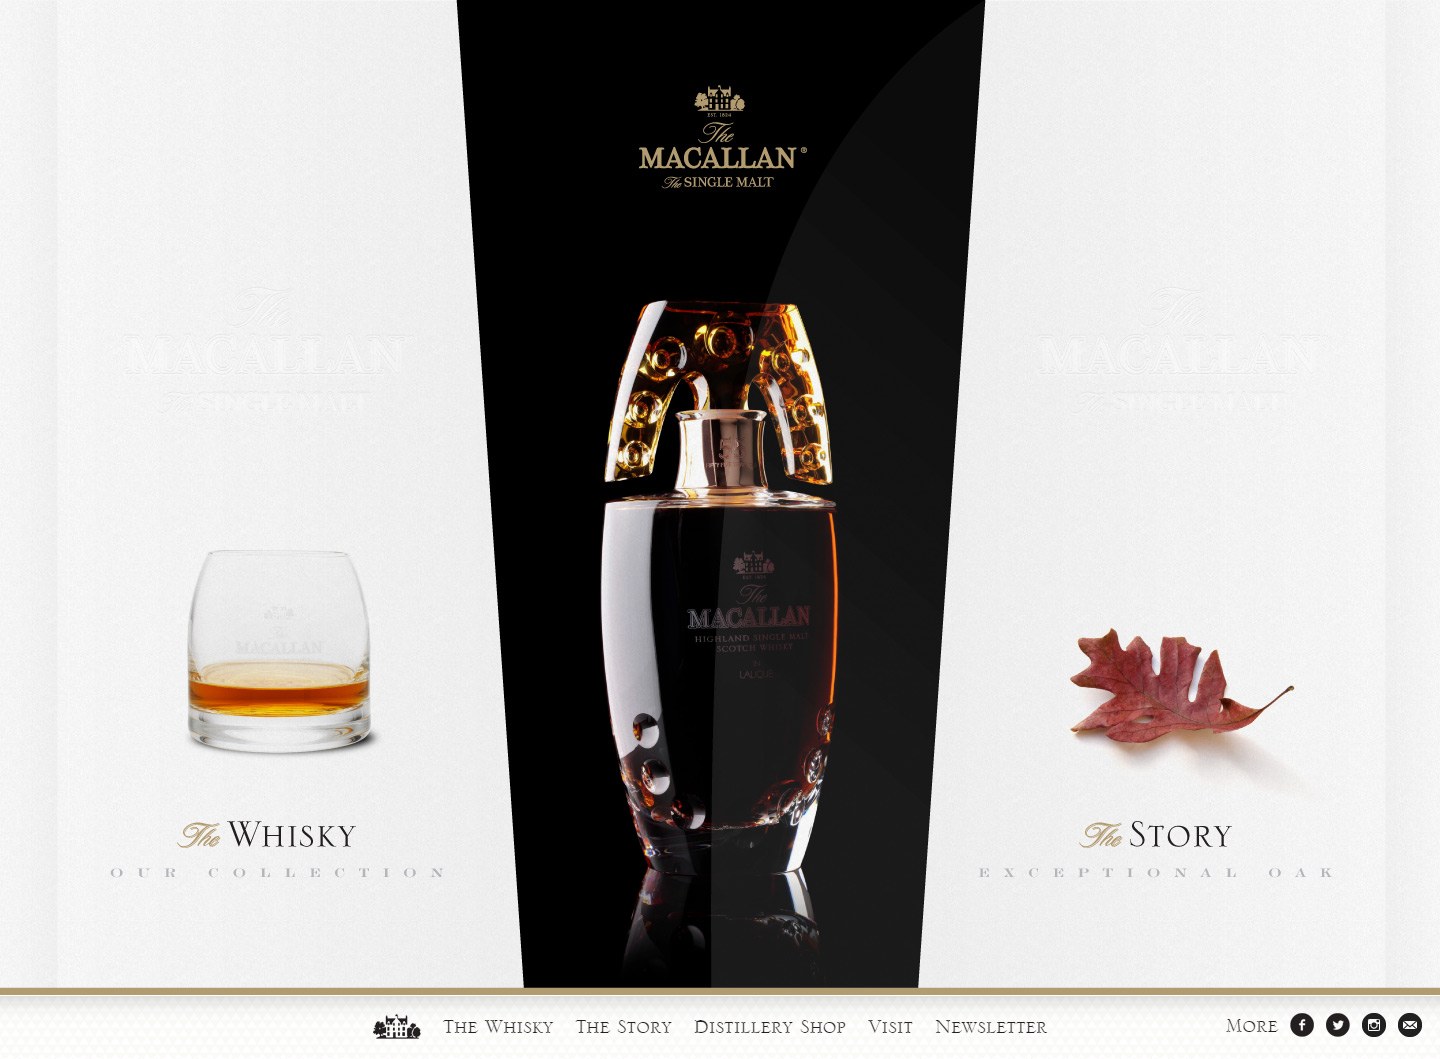 The Macallan Homepage